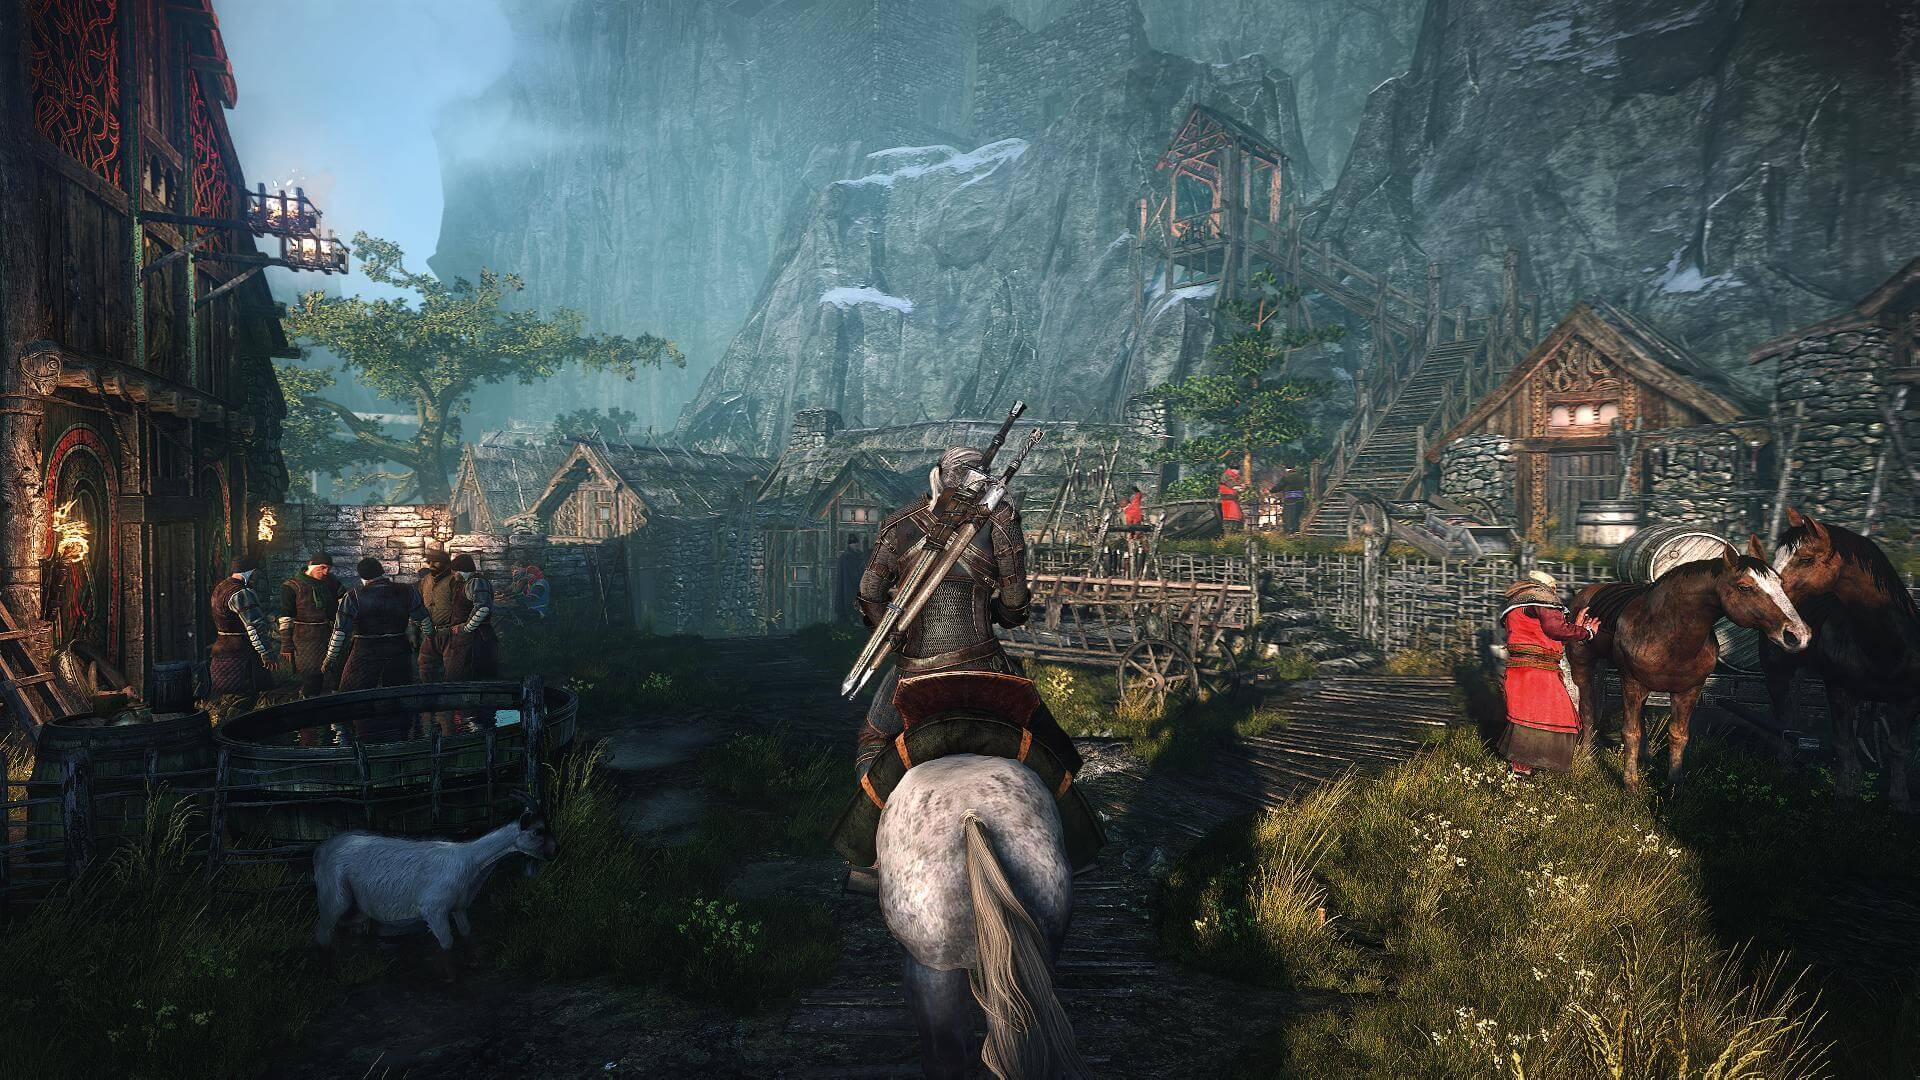 The Witcher 3: Wild Hunt's Living, Breathing, and Chaotic World